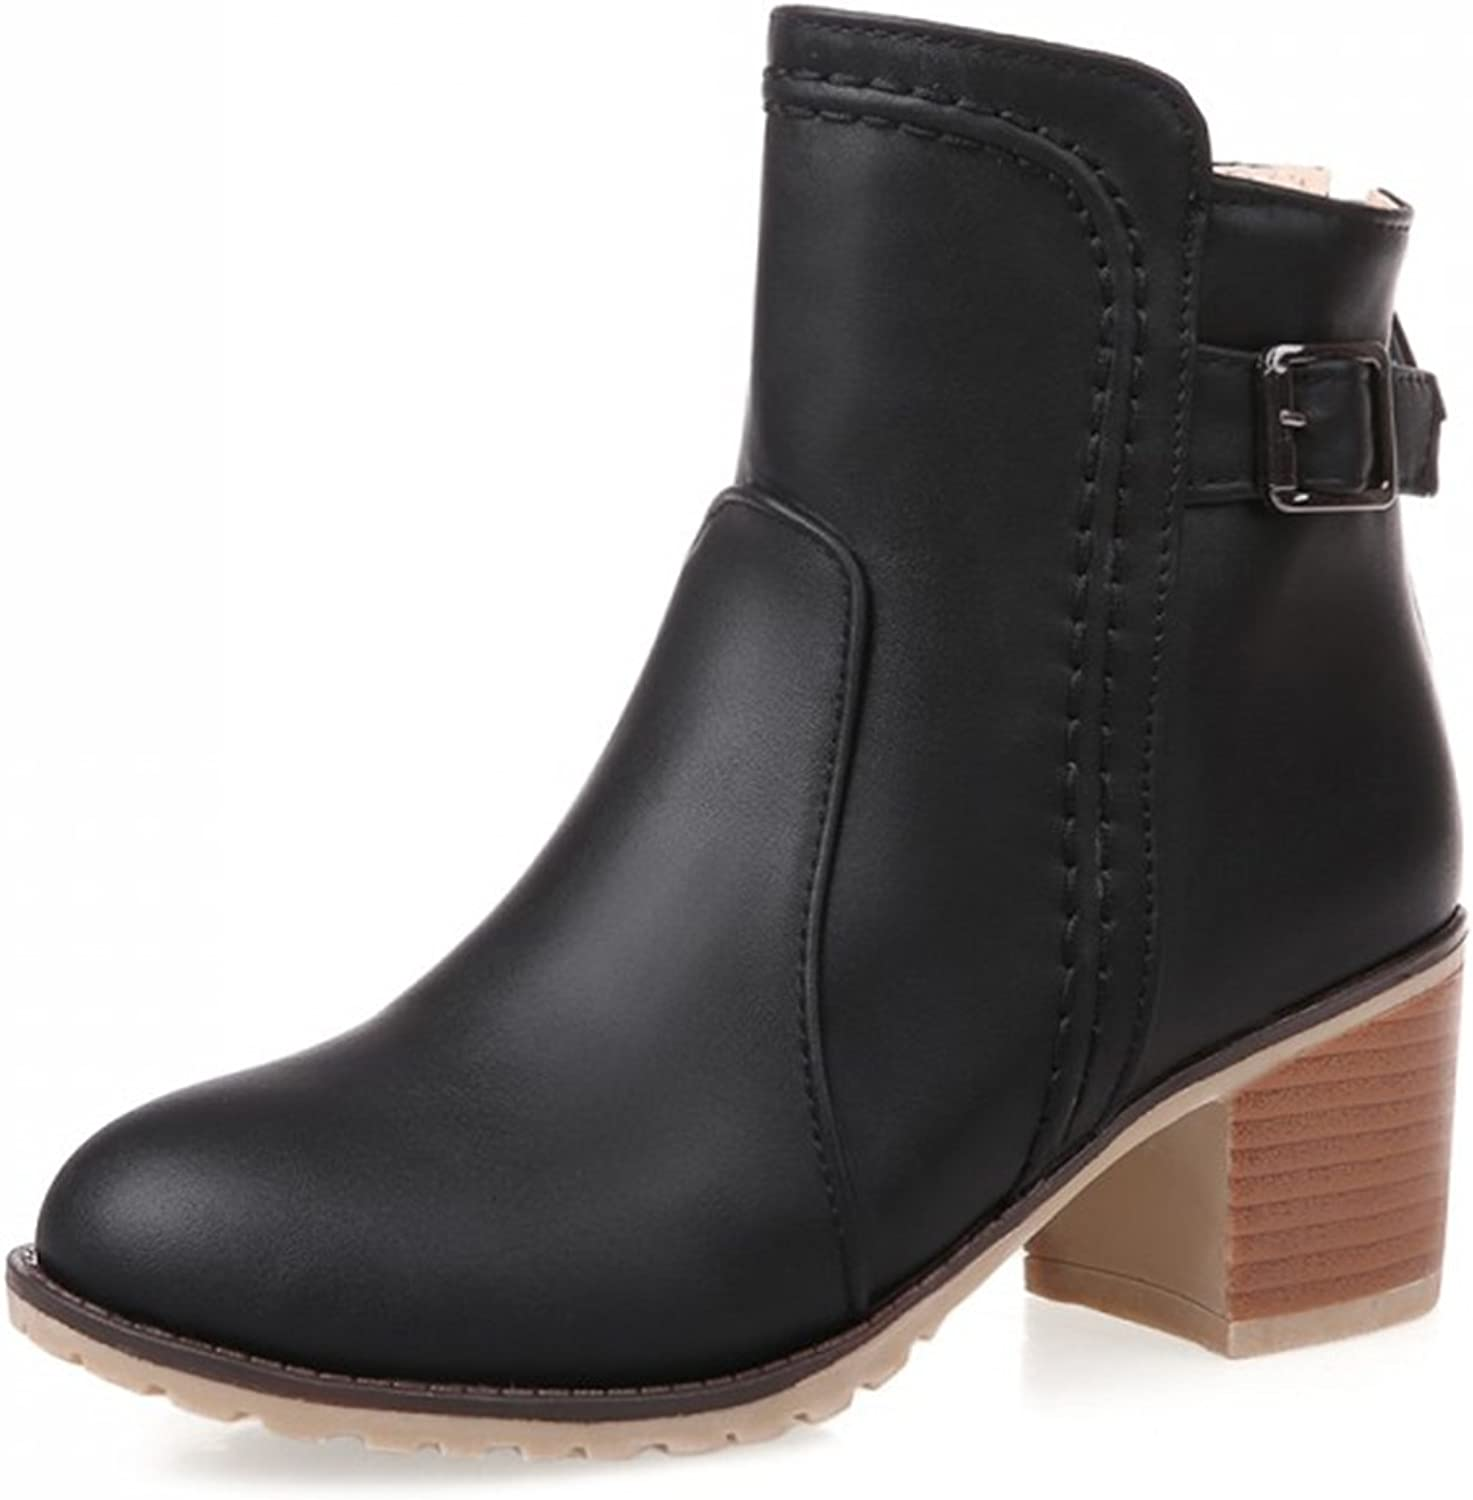 IDIFU Women's Casual Stacked Chunky Heel Buckle Short Ankle Booties